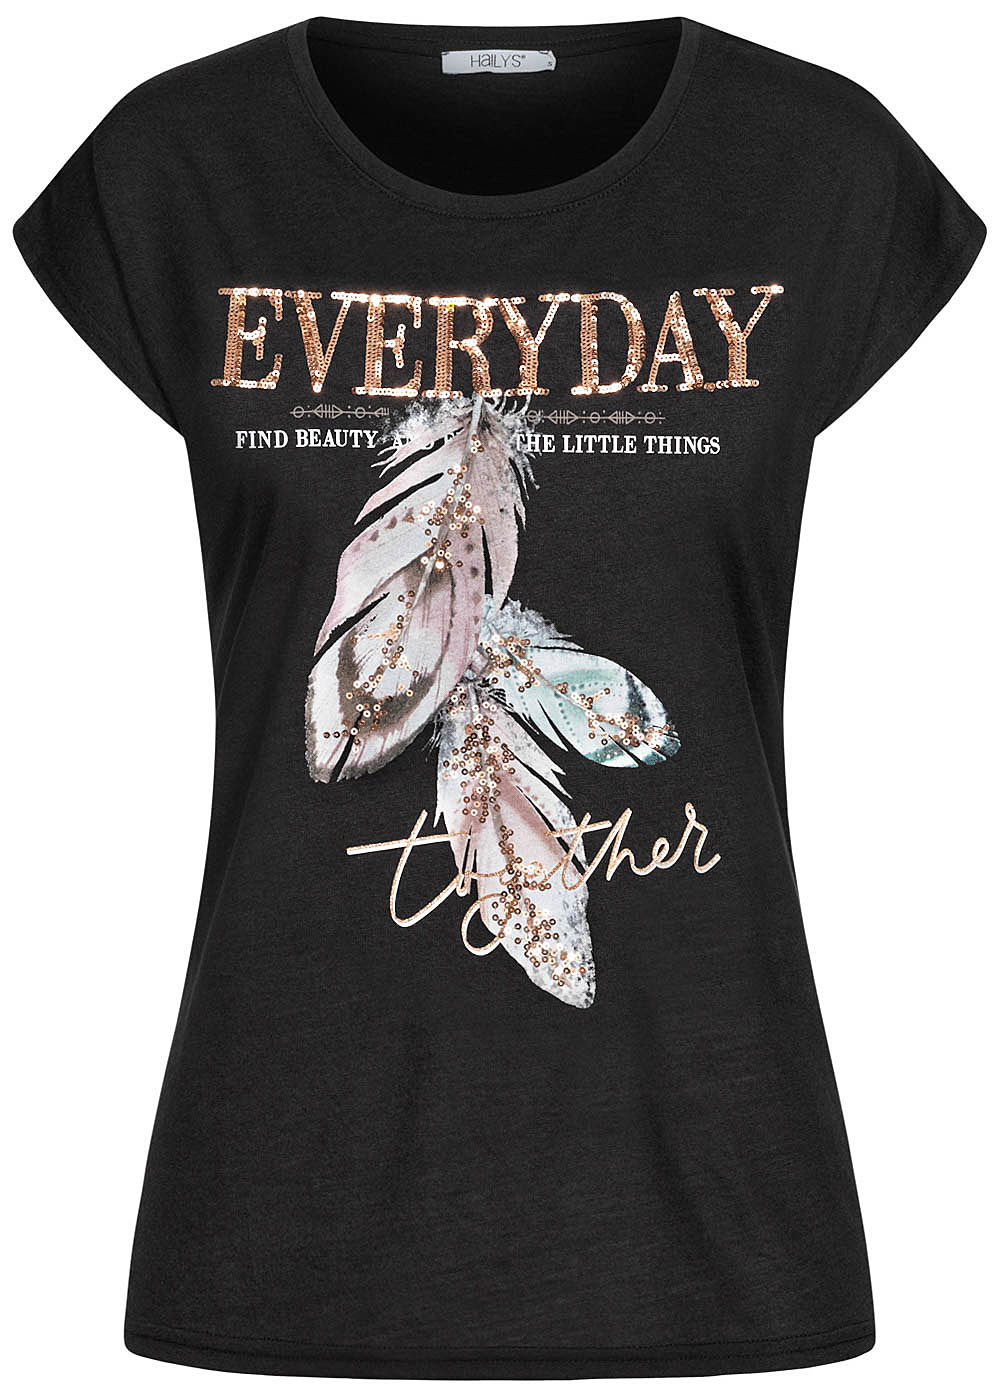 Hailys Damen T-Shirt EVERYDAY Pailletten Feder Print schwarz - Art.-Nr.: 20104706-L-BK